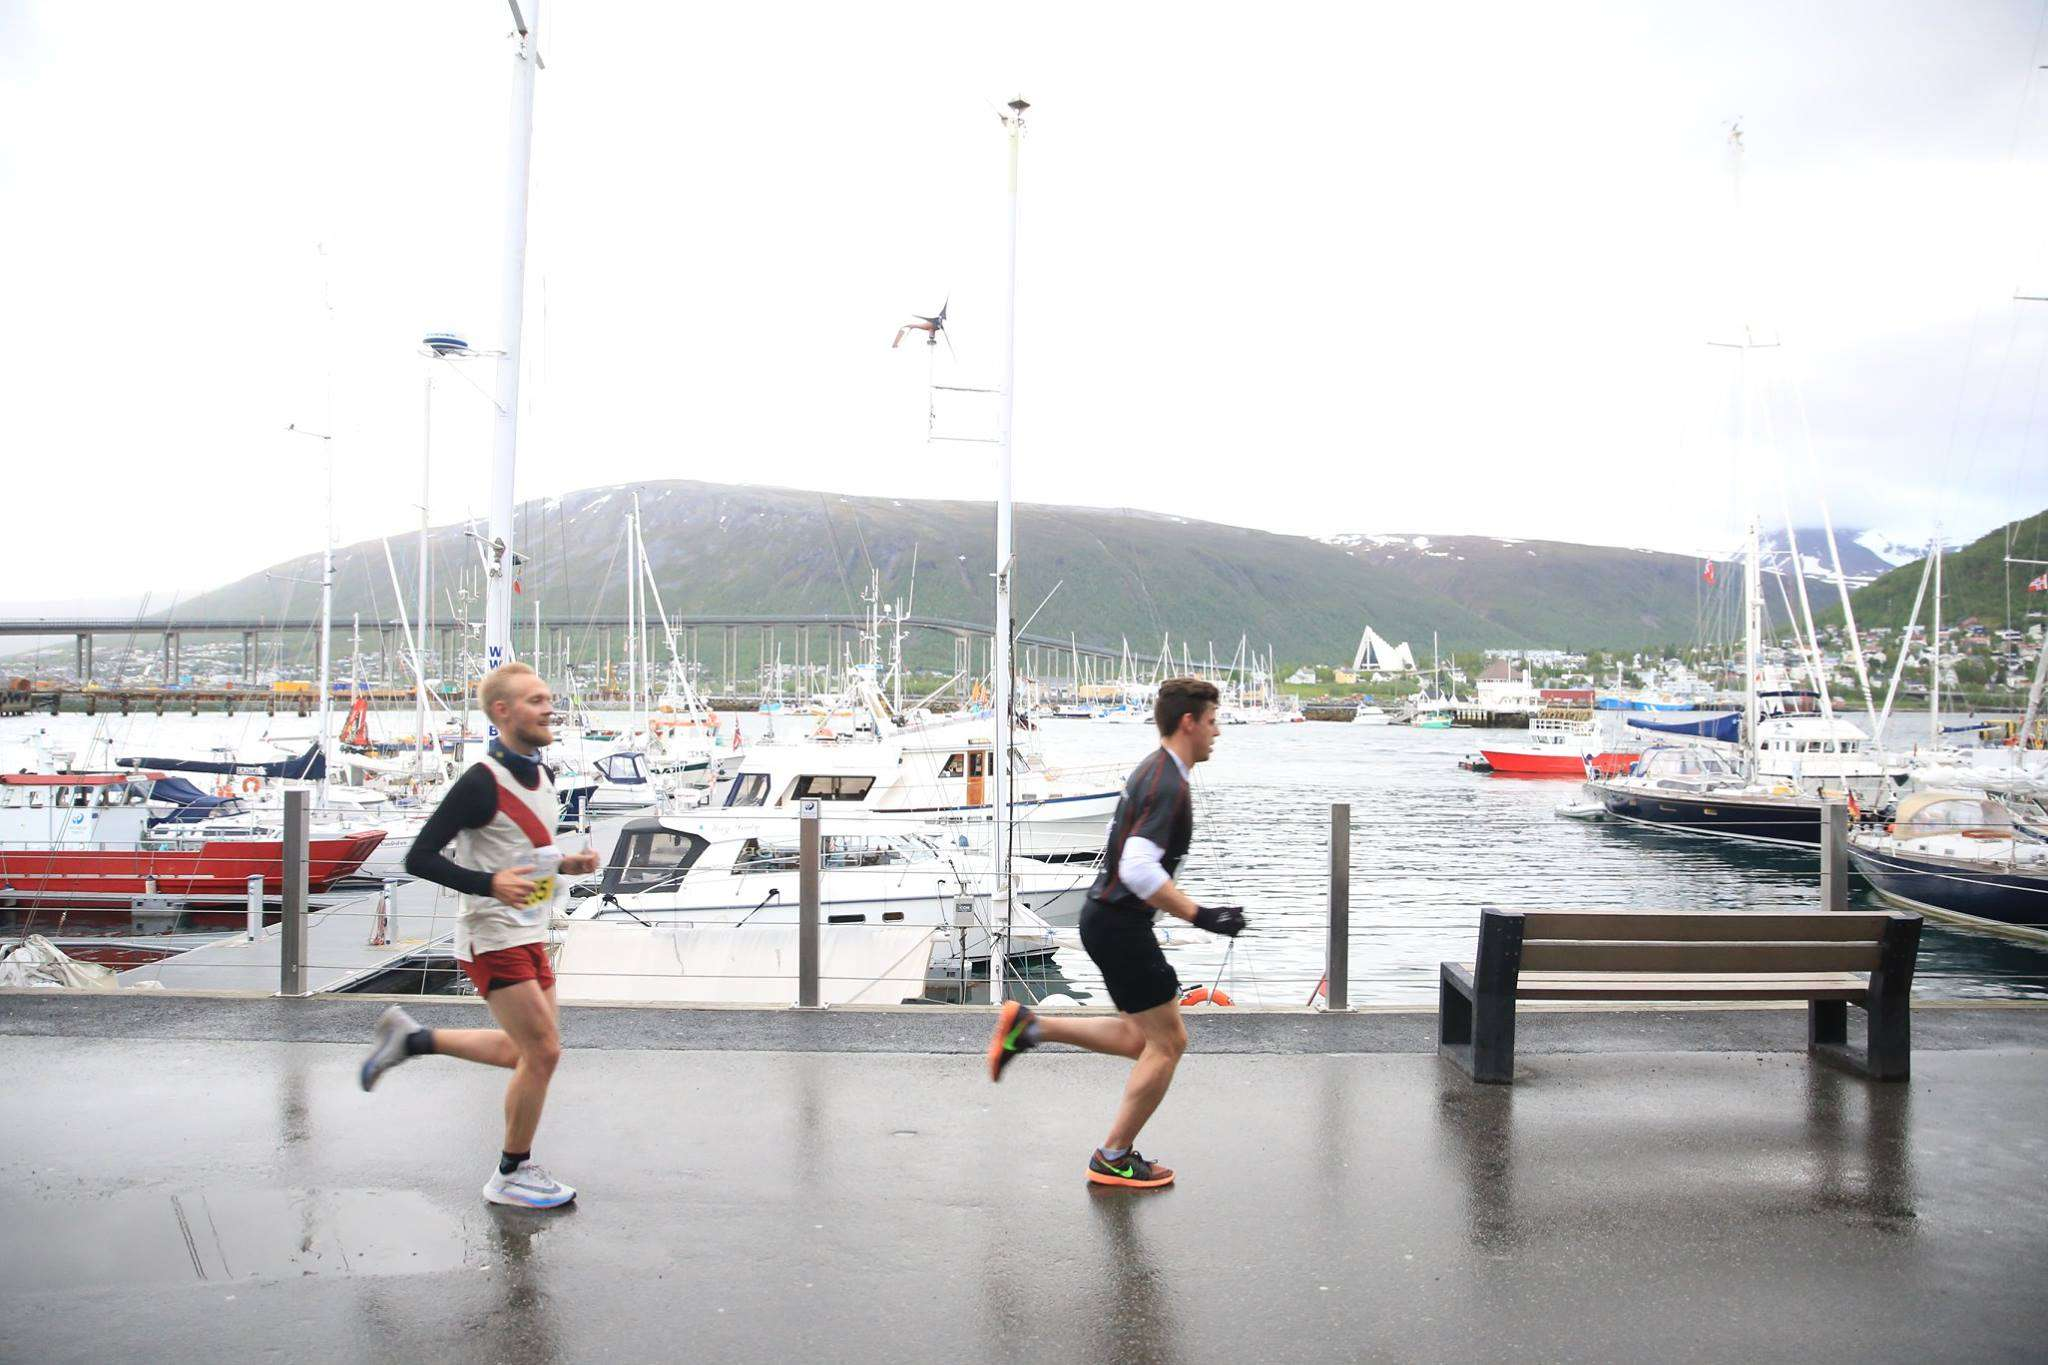 Two runners on the docks of Tromsø